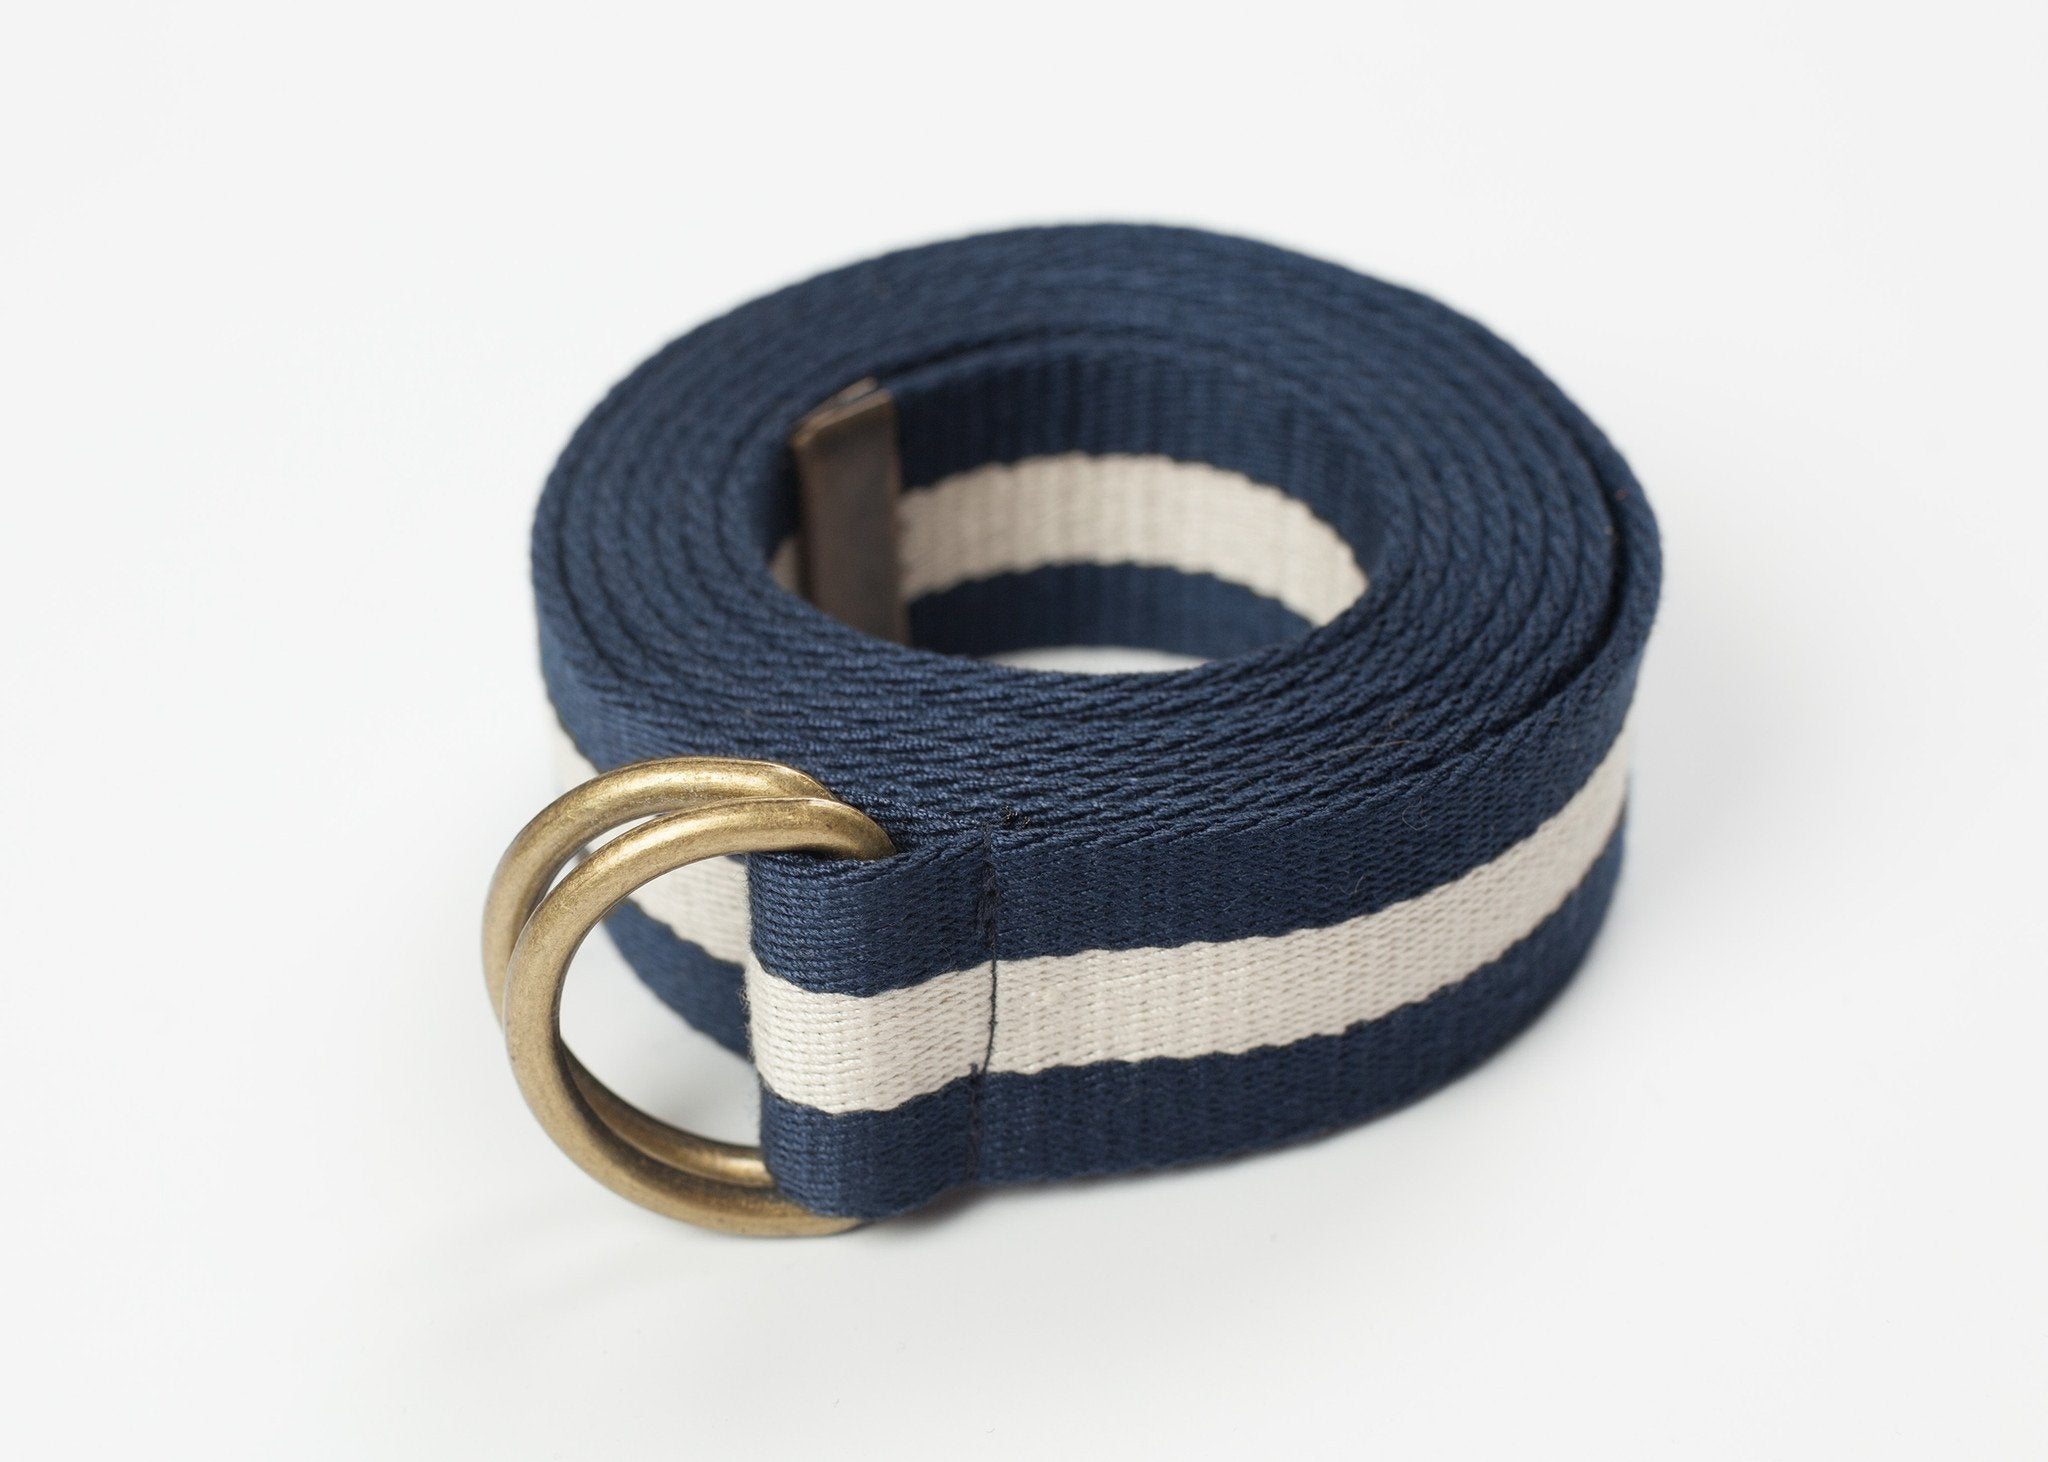 Striped Web Belt in Navy/White